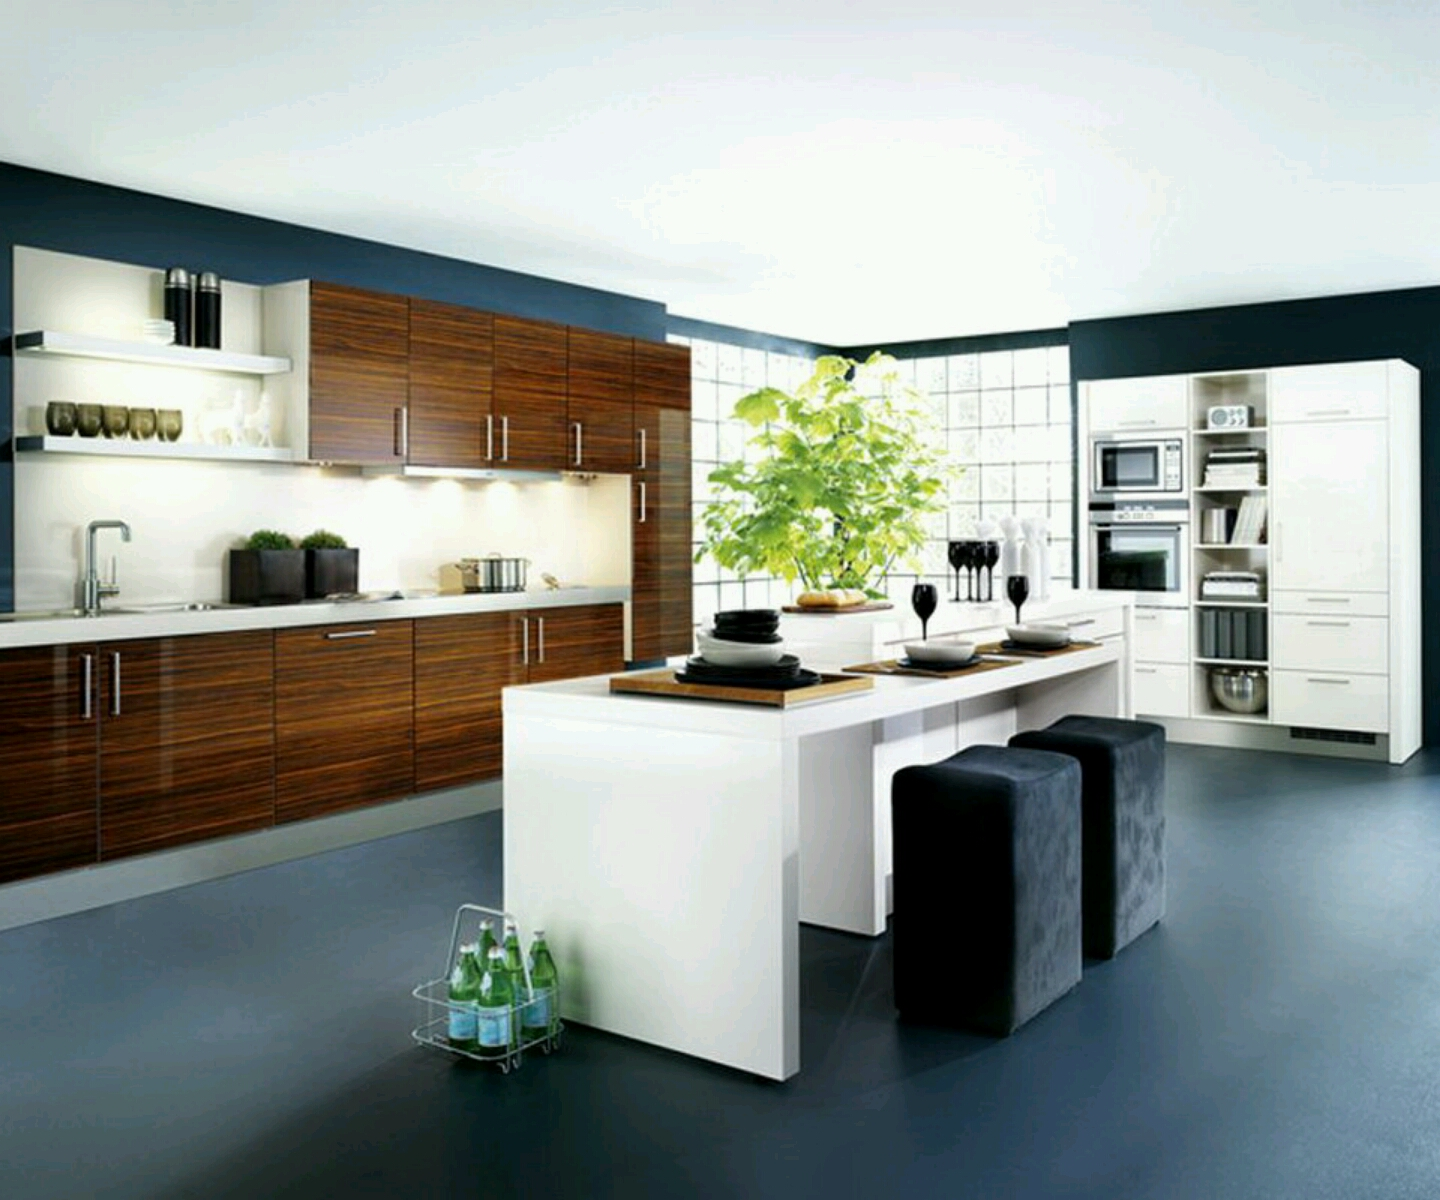 New home designs latest kitchen cabinets designs modern for New kitchen designs pictures